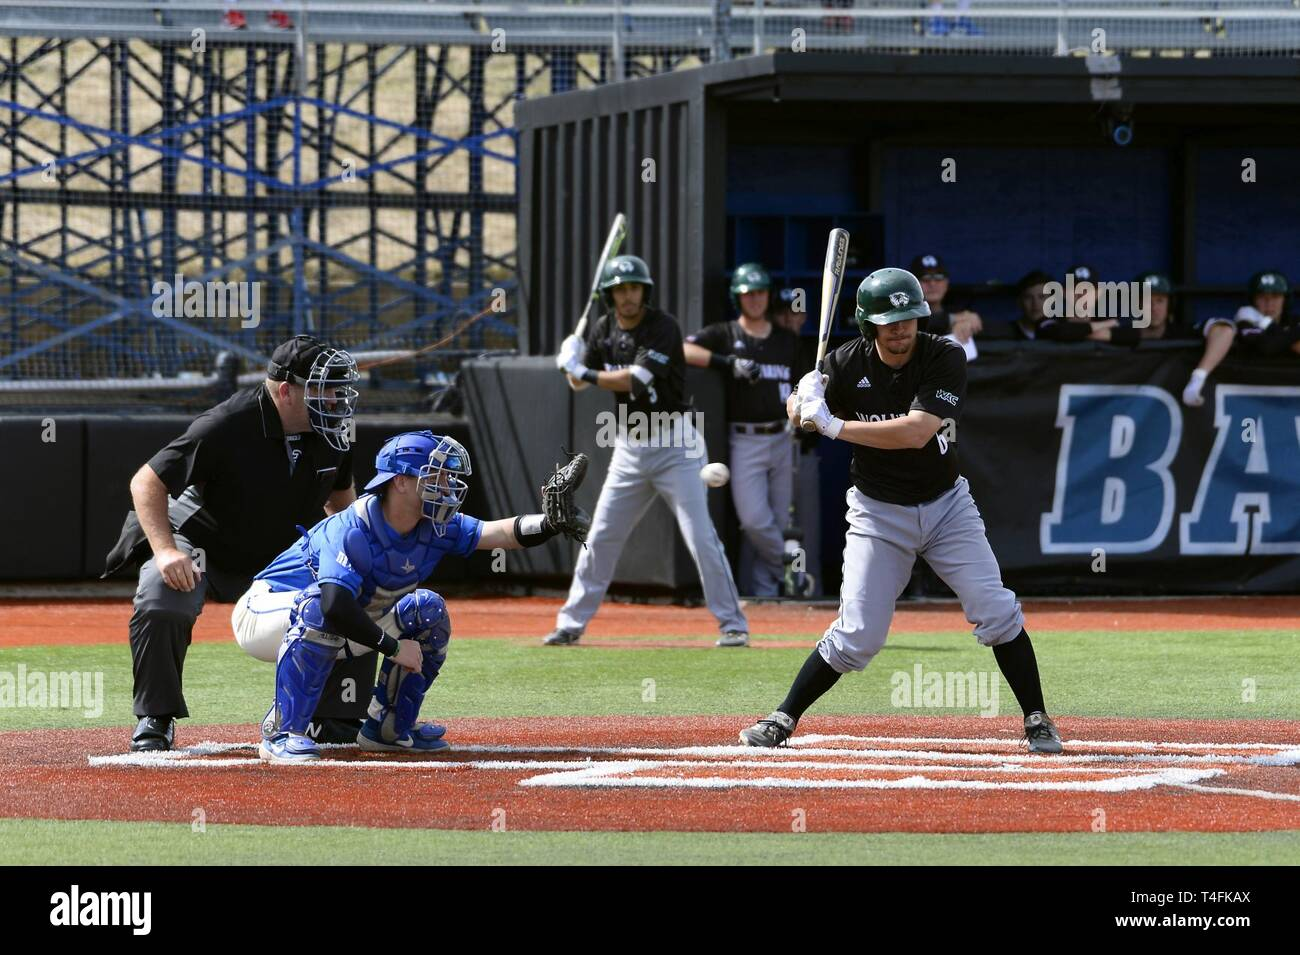 U S Air Force Academy The Falcons Catcher Braydon Altorfer 18 Catches A Perfect Pitch During A Game Against Utah Valley University The Falcons Defeated The Wolverines 16 15 With A Walk Off